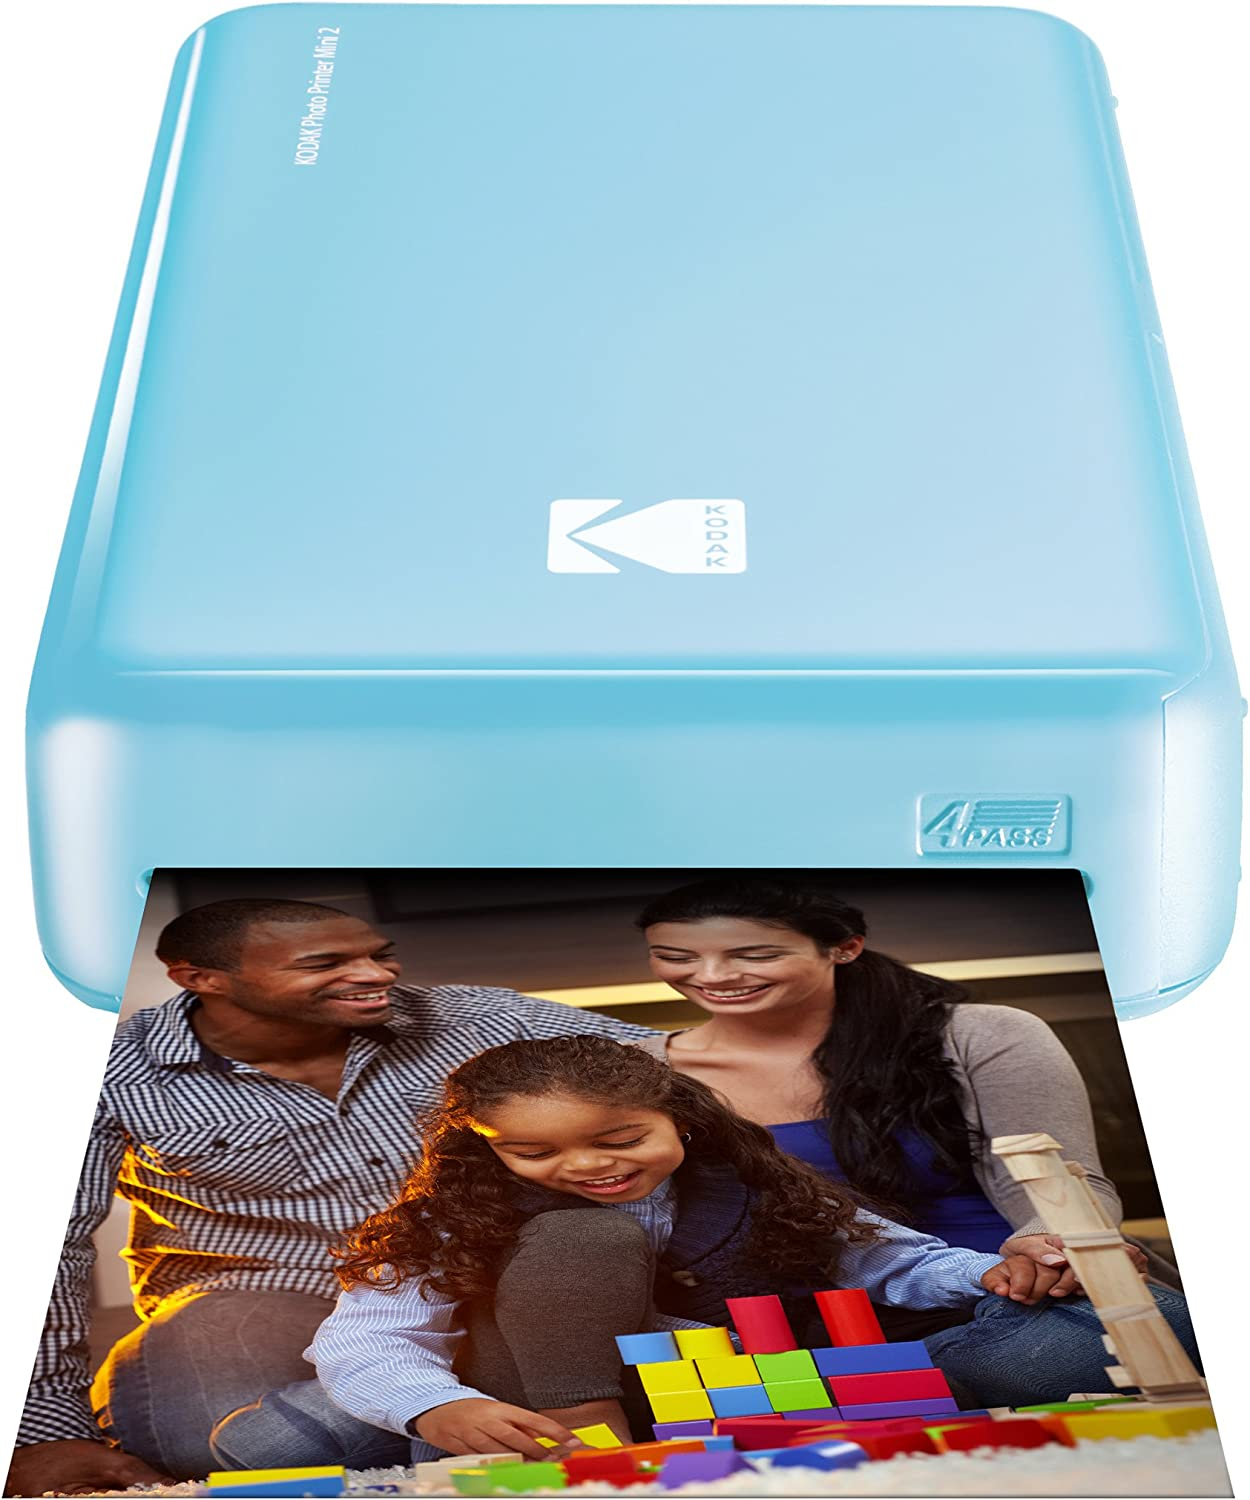 Best Photo Printer For Cell Phone & Professional Photographers 2020